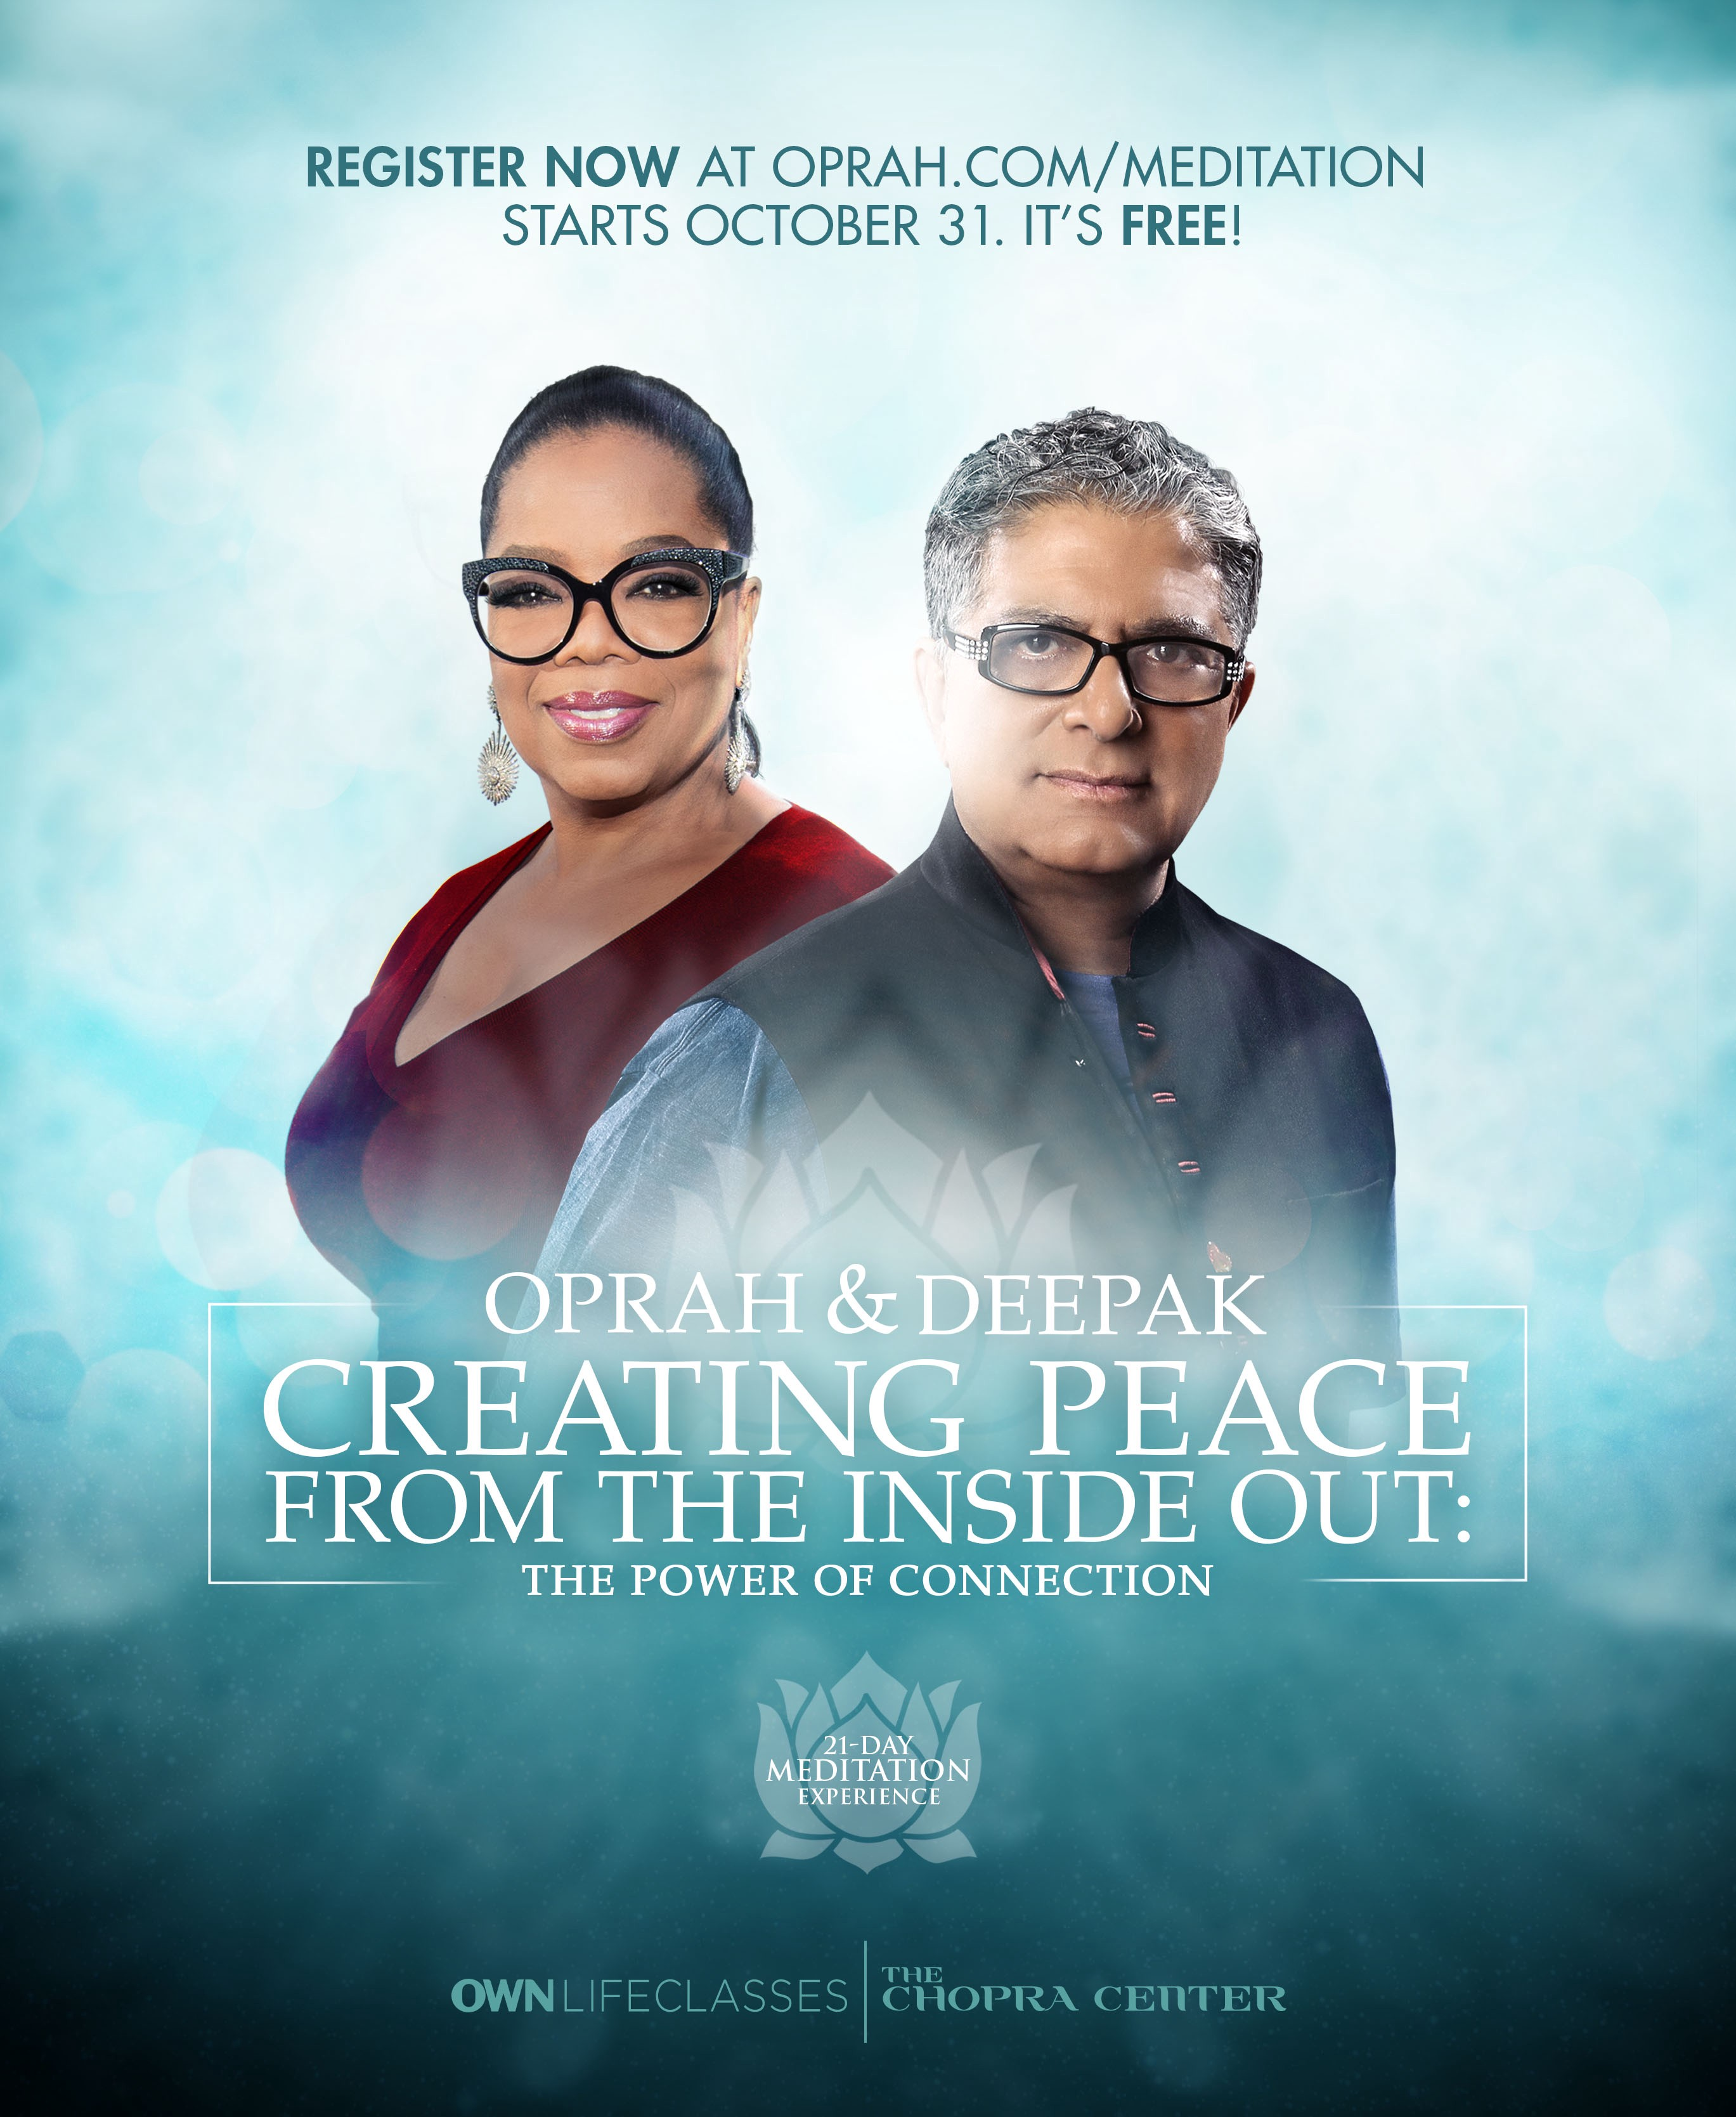 Meditation with Deepak Chopra and Oprah Winfrey